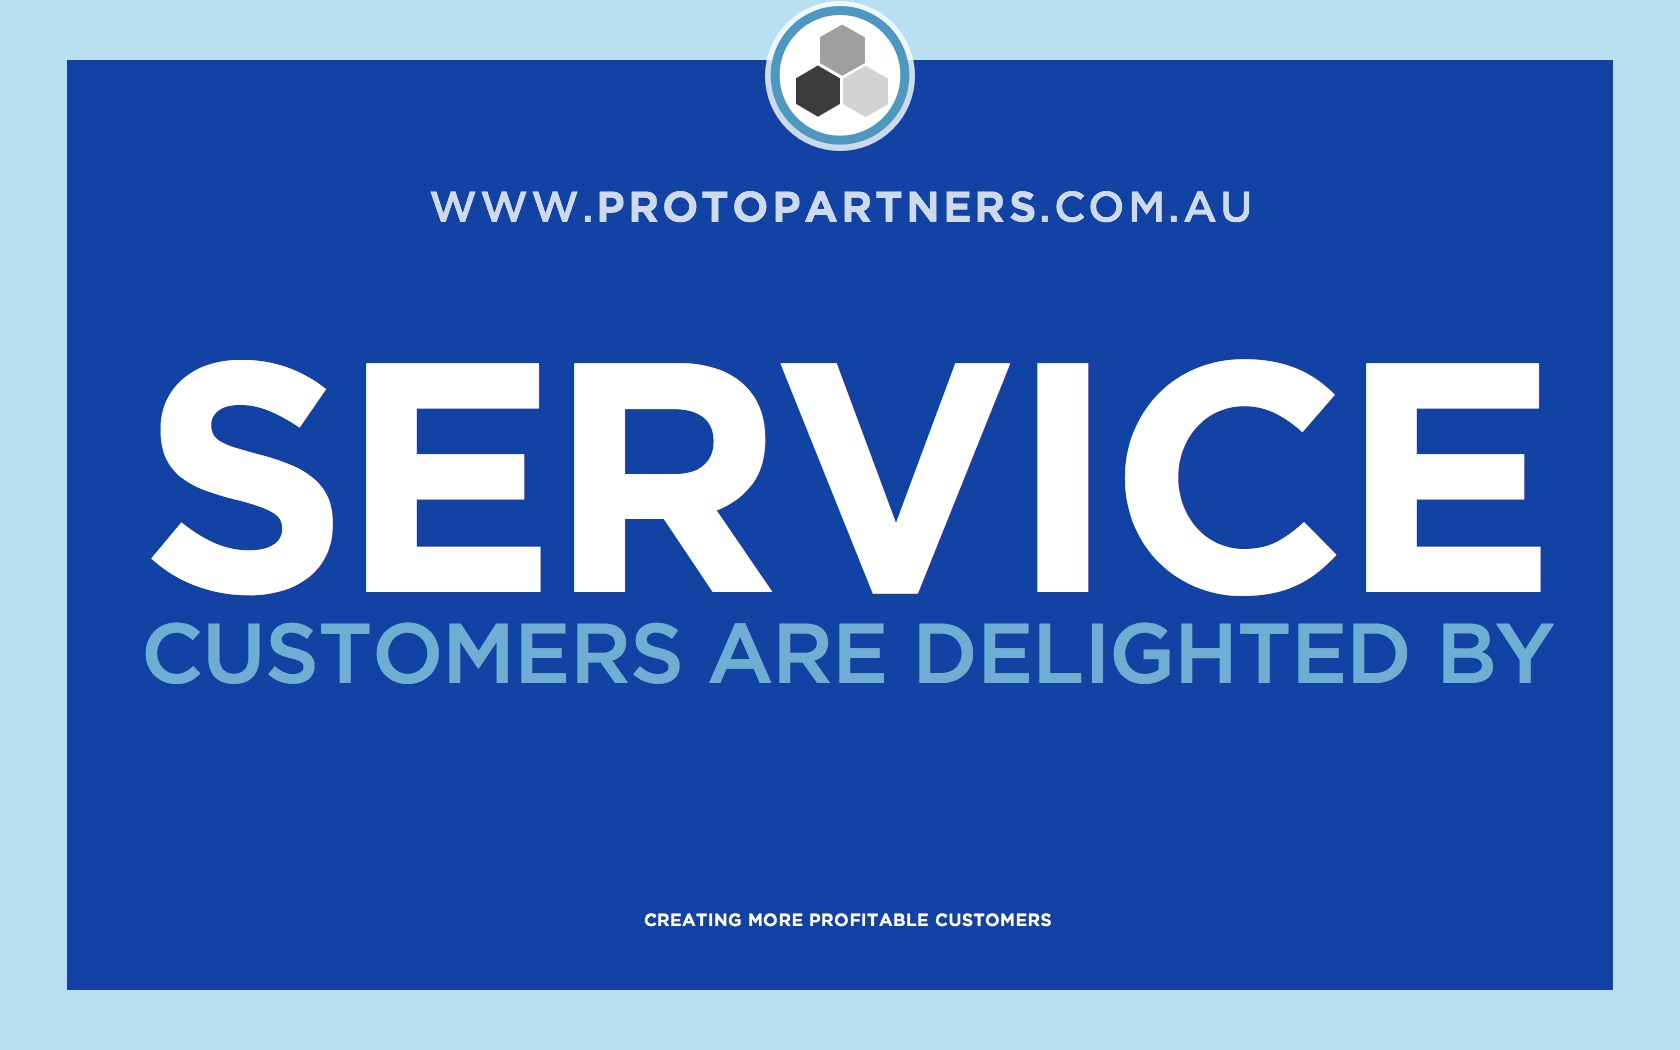 SERVICE WE ARE DELIGHTED BY